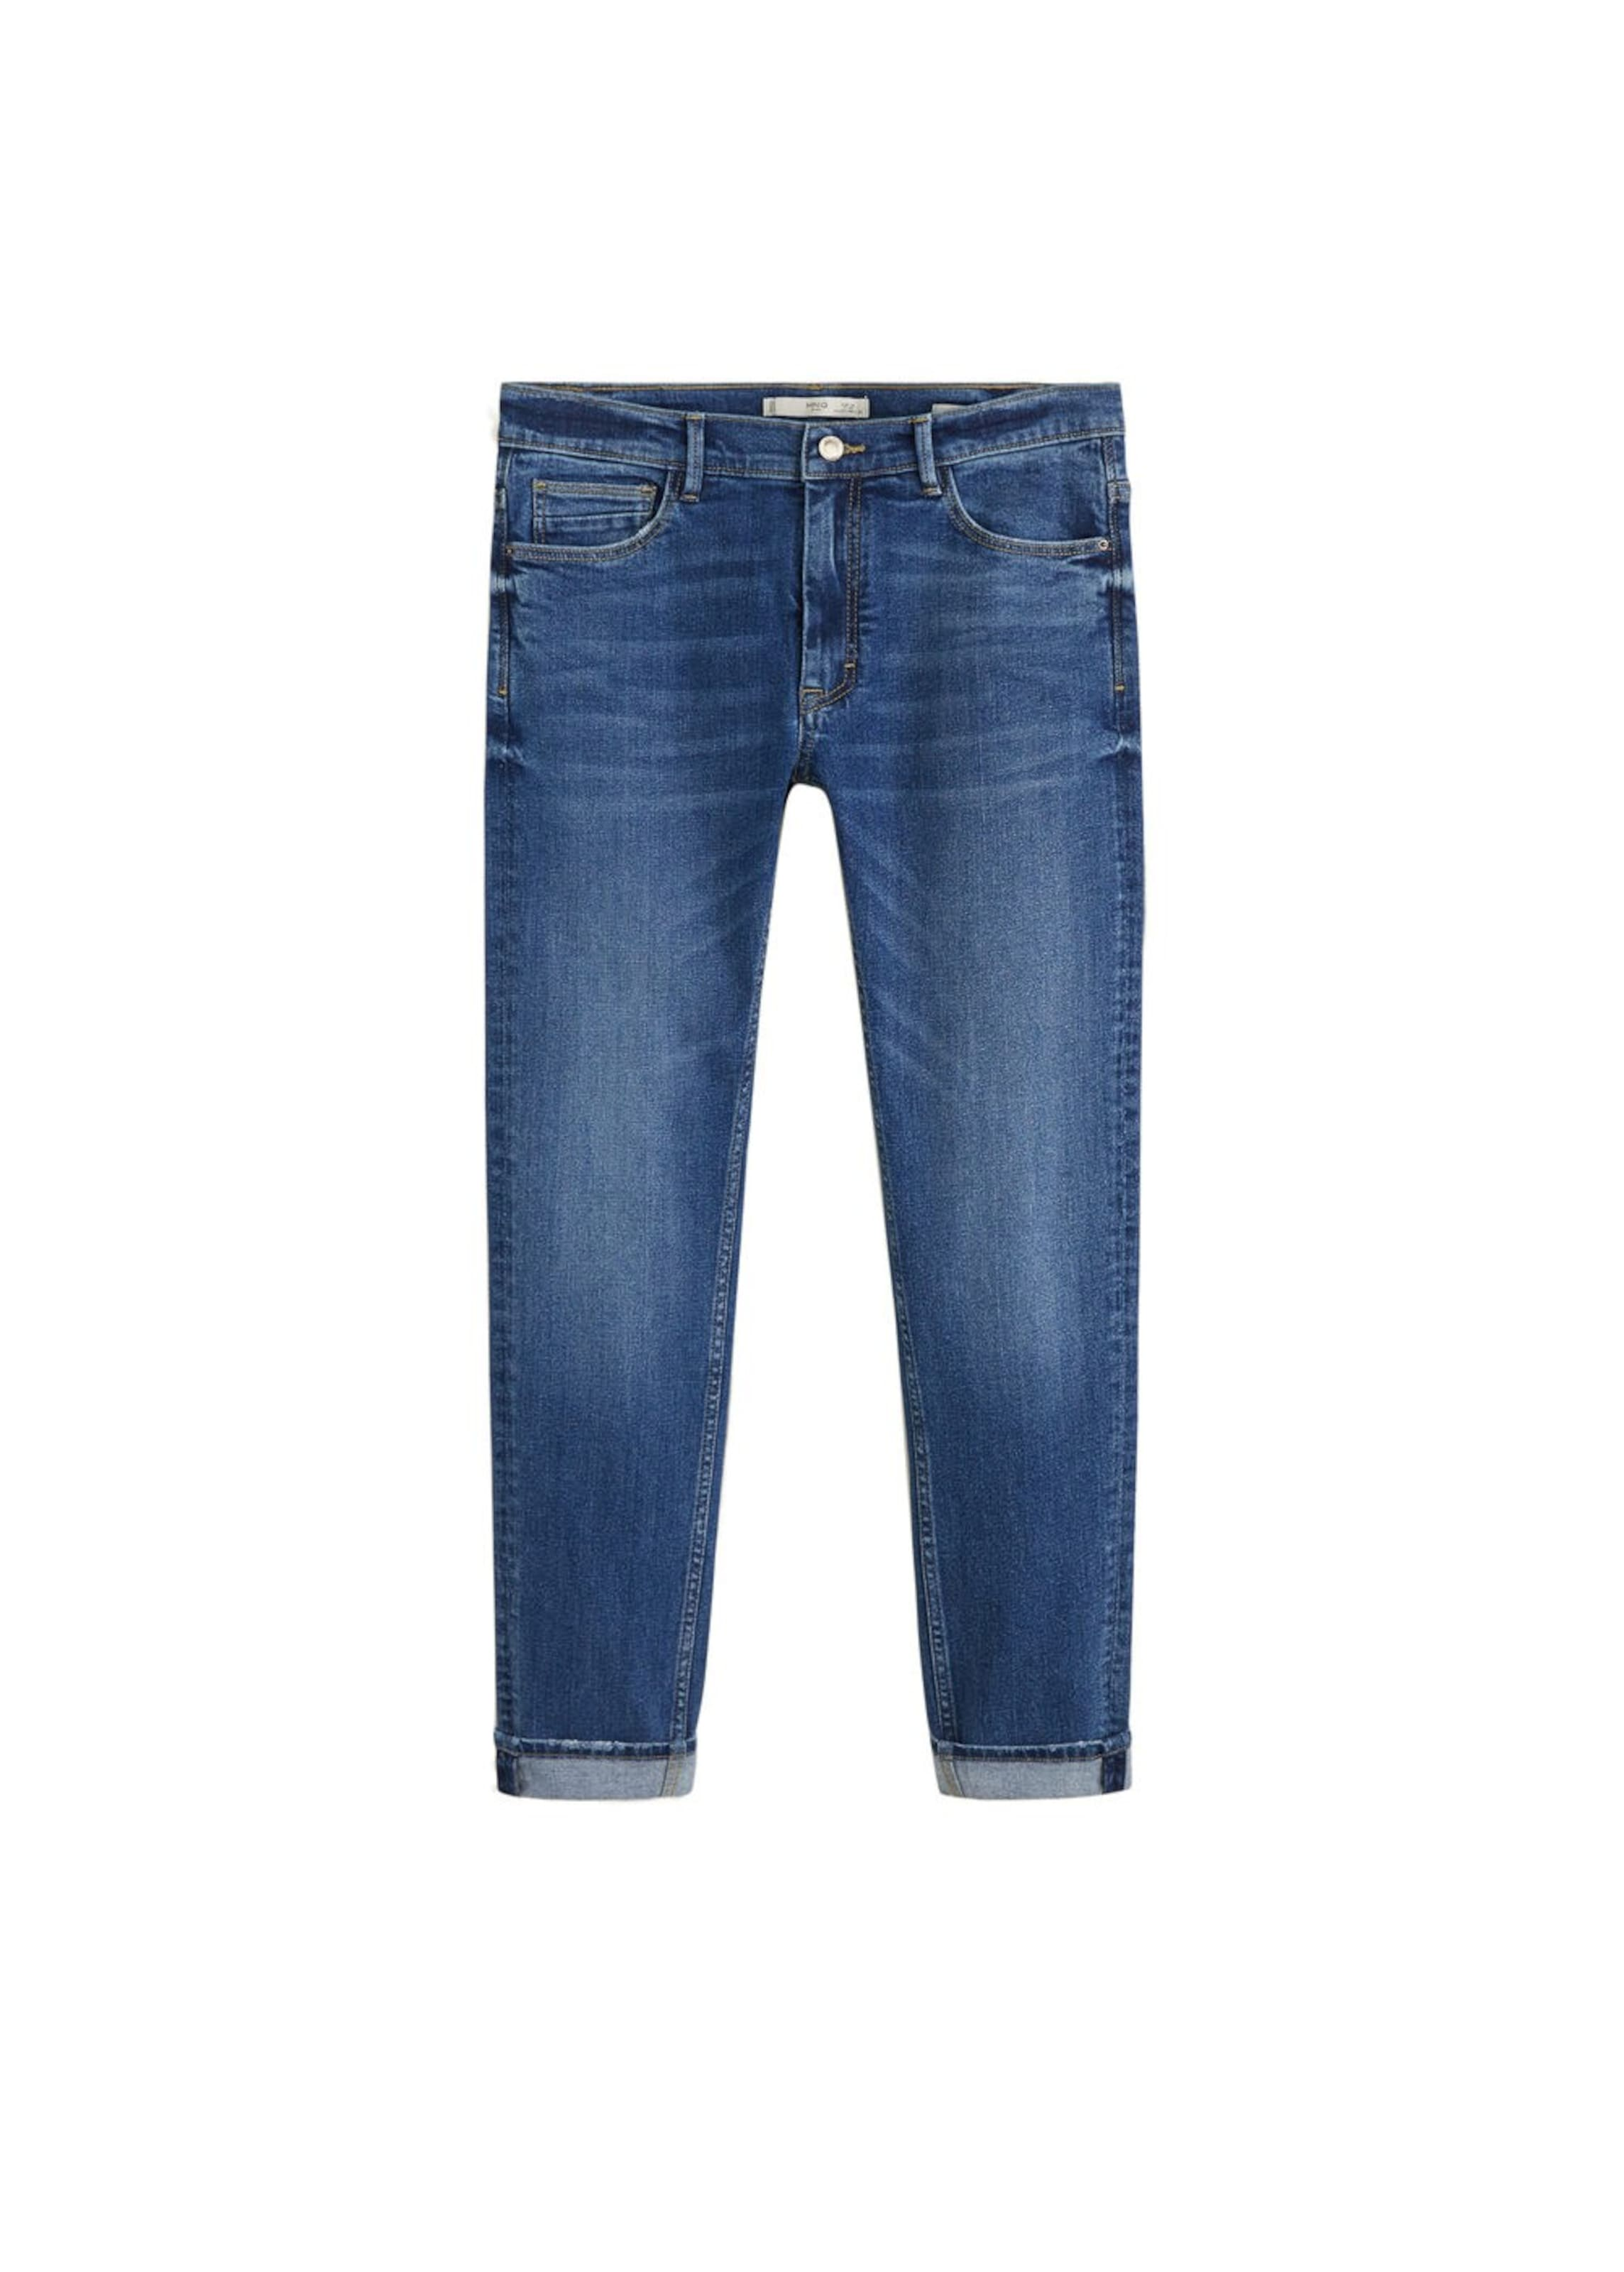 Man In Denim Mango Blue Jeans 'jude5' CexrdBoW